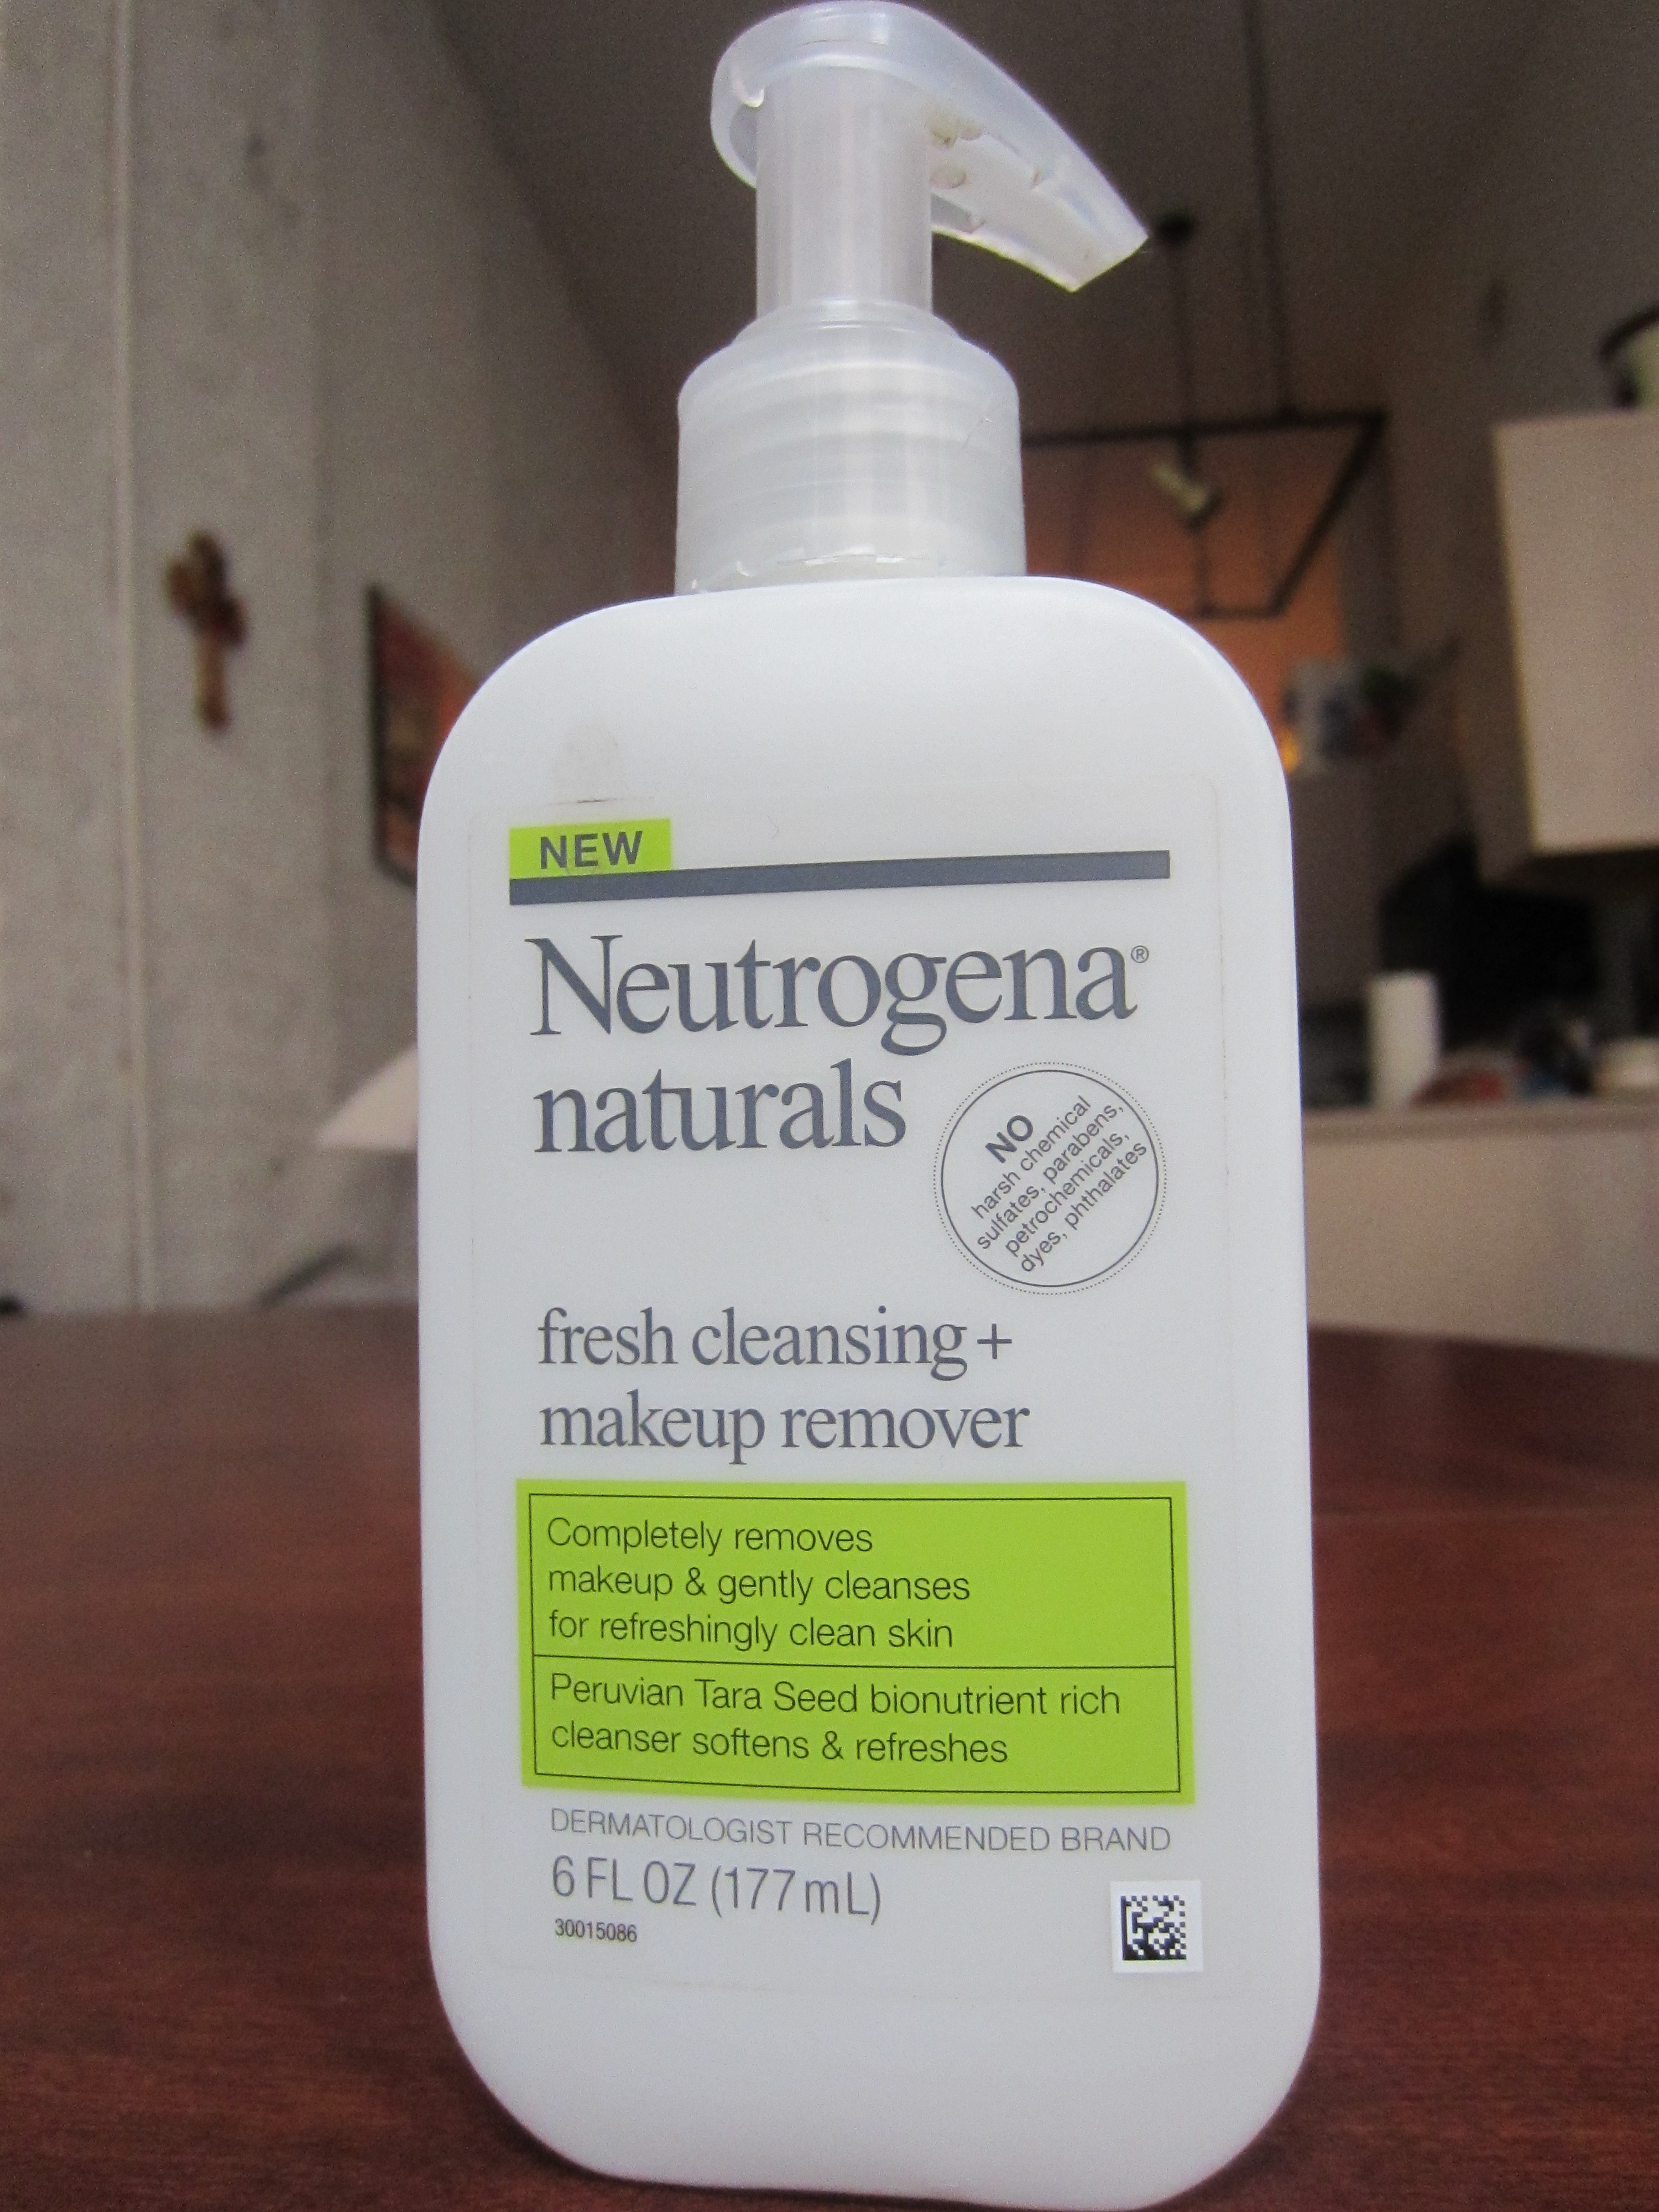 Makeup Removal Important Skin Care Routine: Neutrogena Naturals Cleanser And Makeup Remover Review